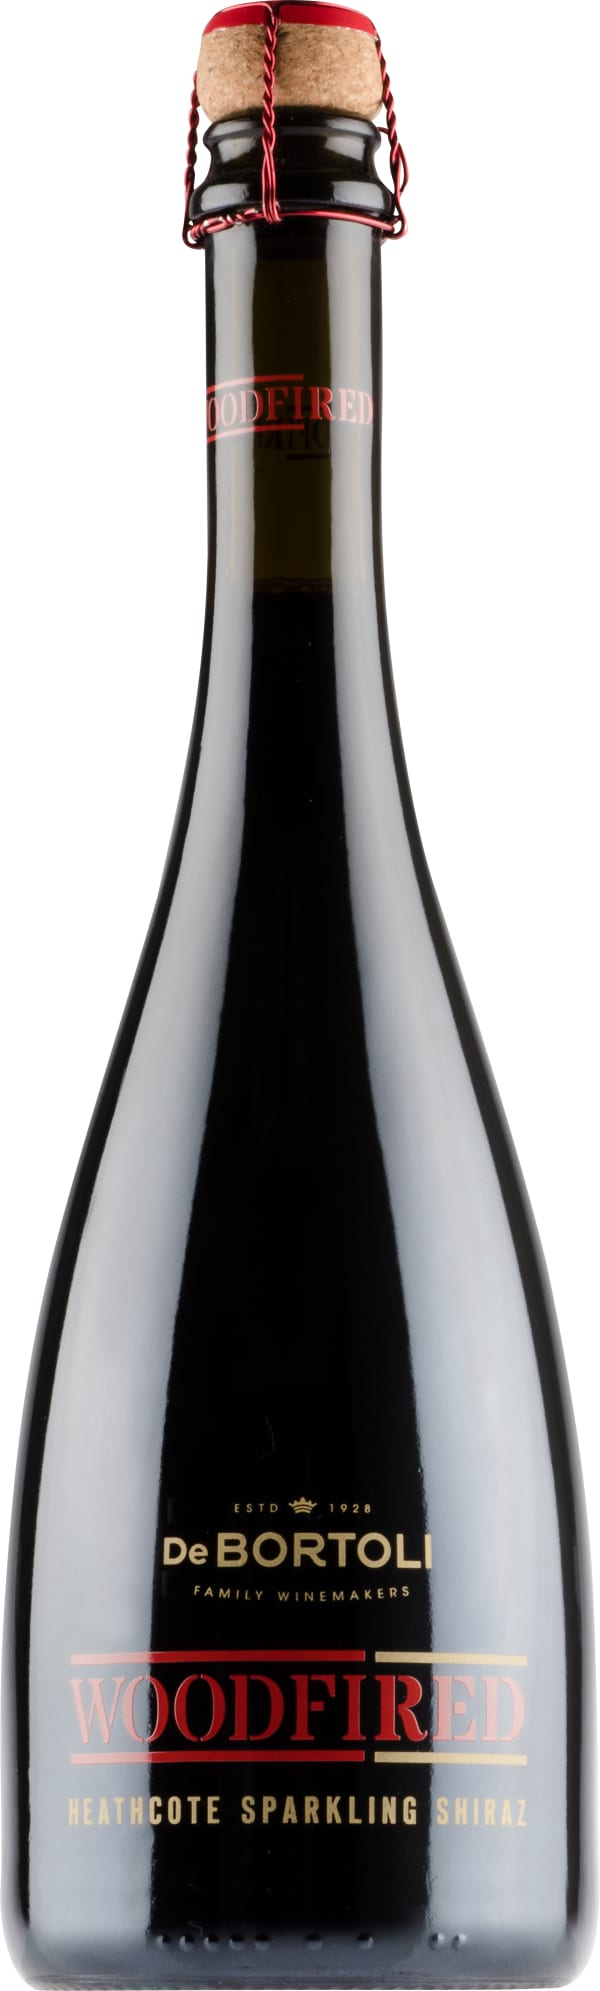 De Bortoli Woodfired Sparkling Shiraz